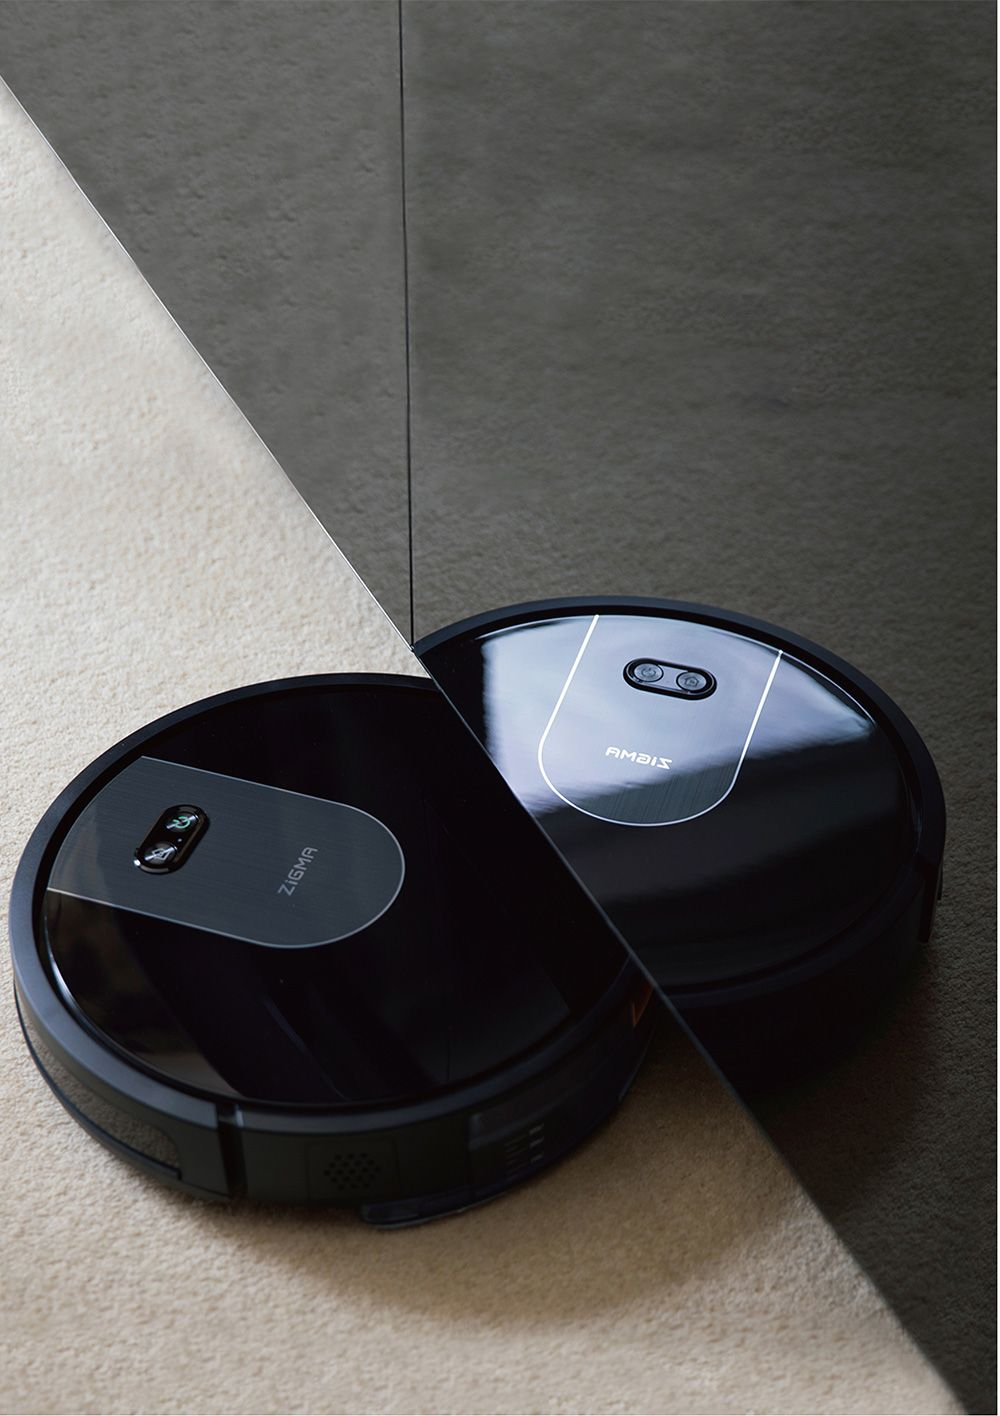 Zigma Spark Robot Vacuum Cleaner Virtual Wall Automatic Area Cleaning 1500pa Suction LDS Navigation APP Control - Black